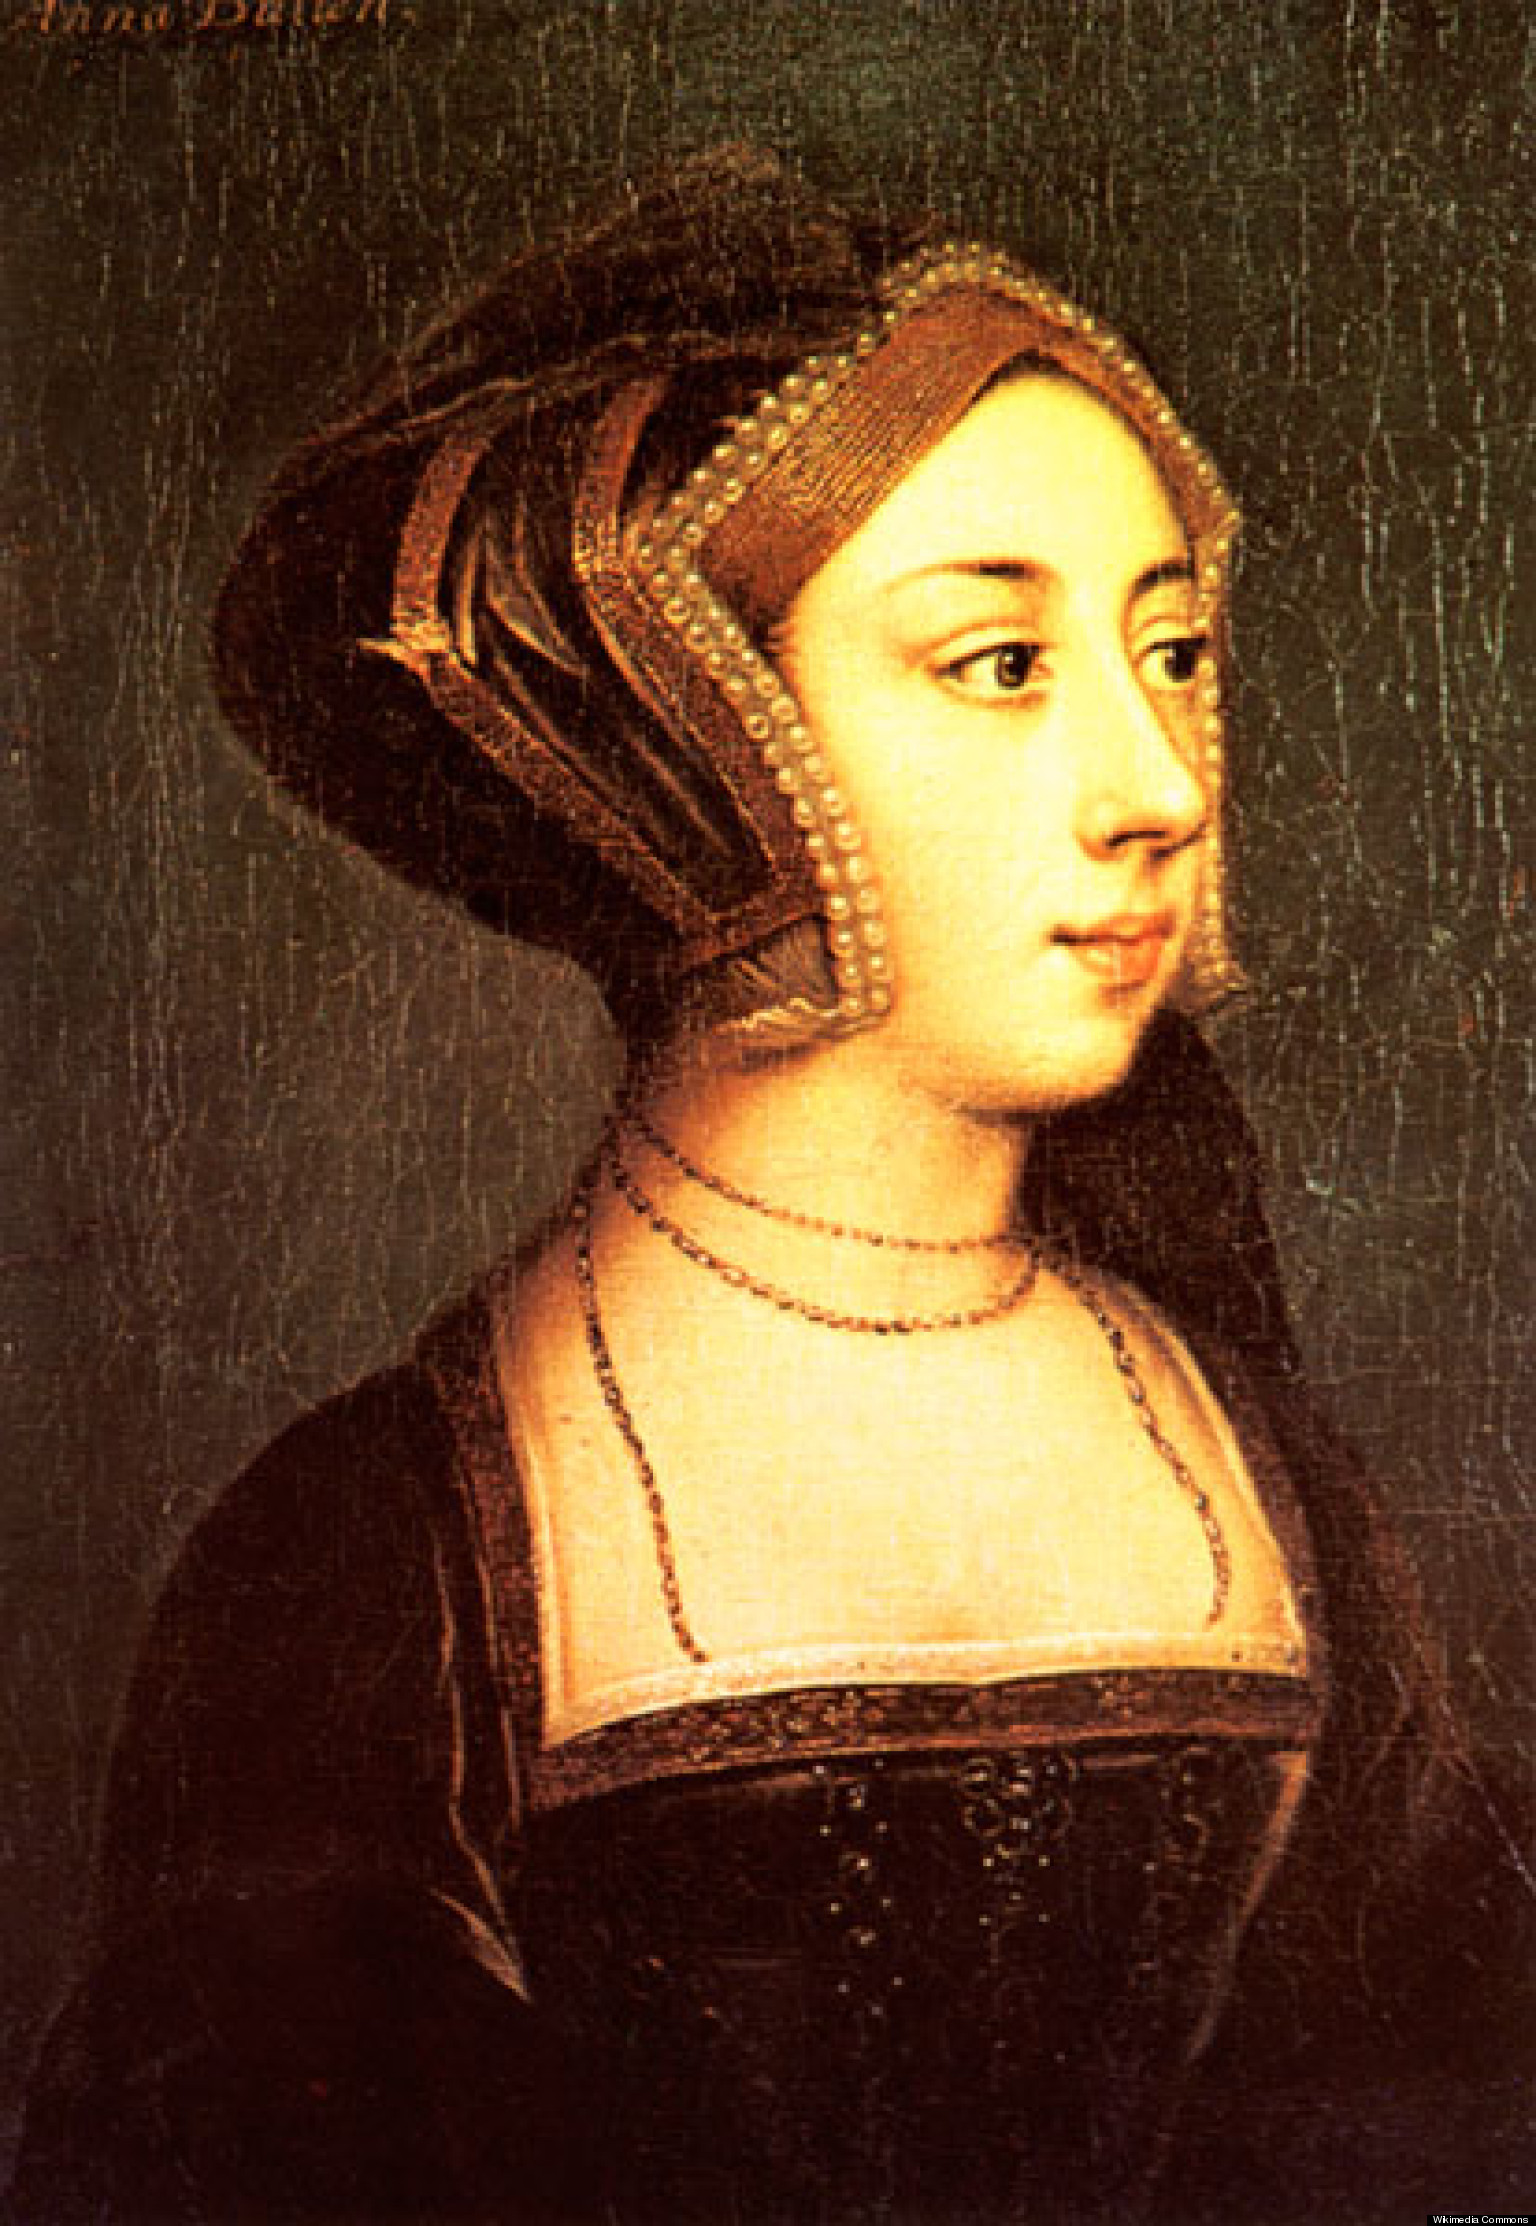 a biography of anne boleyn the queen of england Anne boleyn's wiki:  anne was crowned queen of england on 1  the most recent edition of ives's biography admits that anne may very well have had a personal.